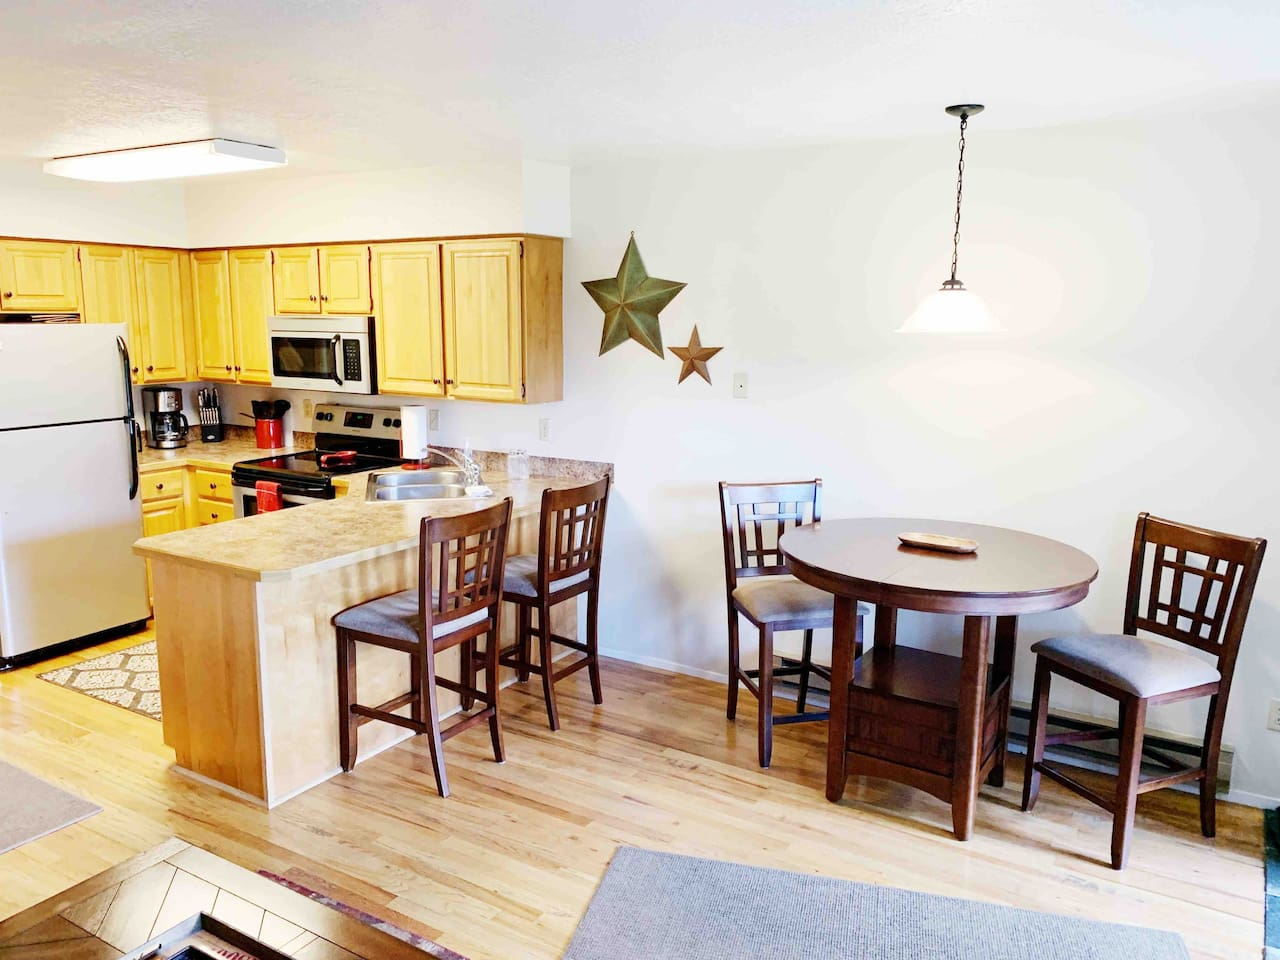 Fully stocked kitchen with stainless steal appliances. Seating for four.